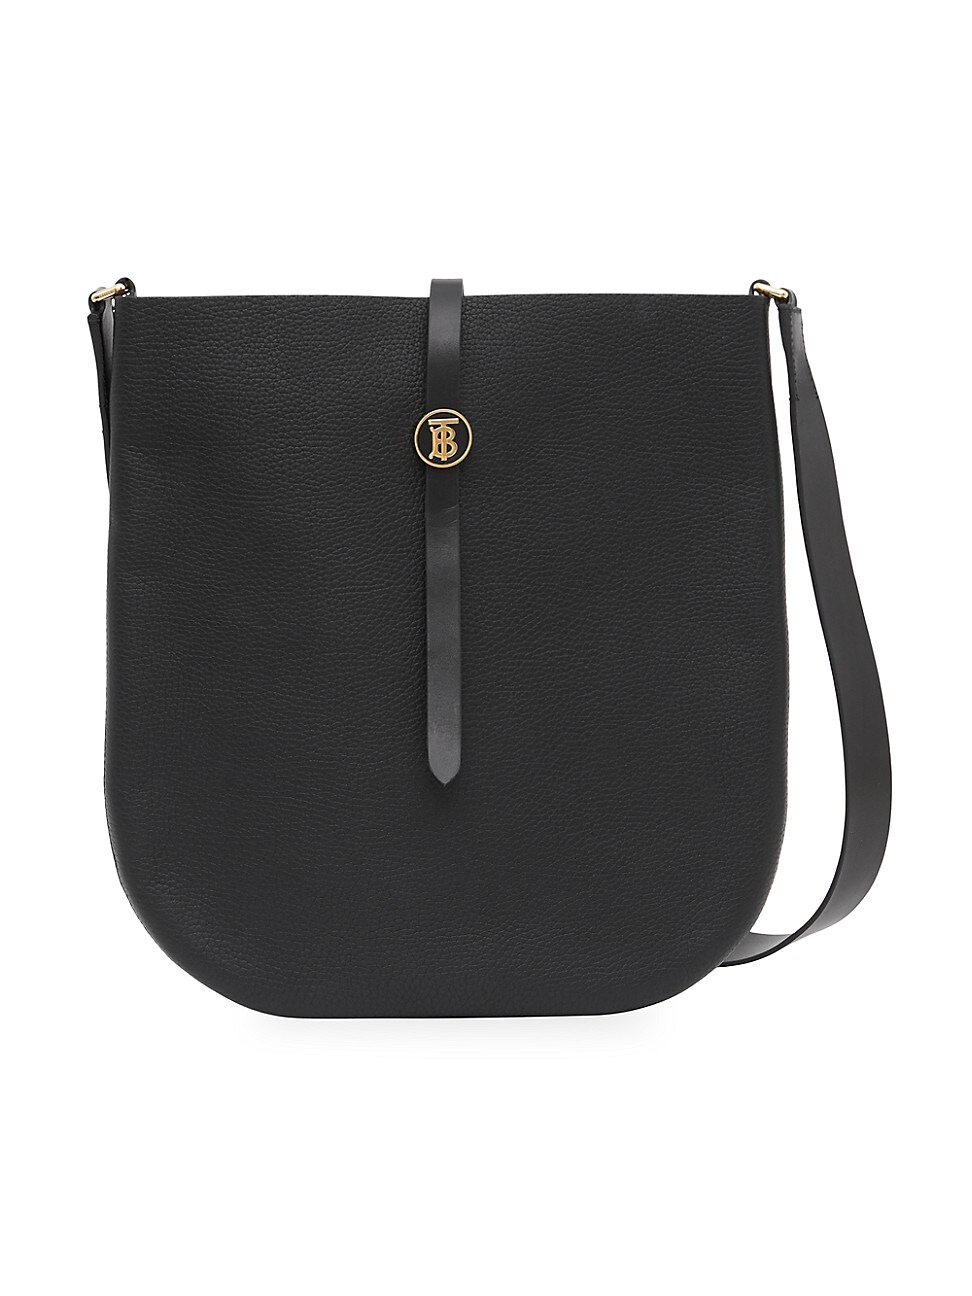 Burberry WOMEN'S ANNE LEATHER SADDLE BAG